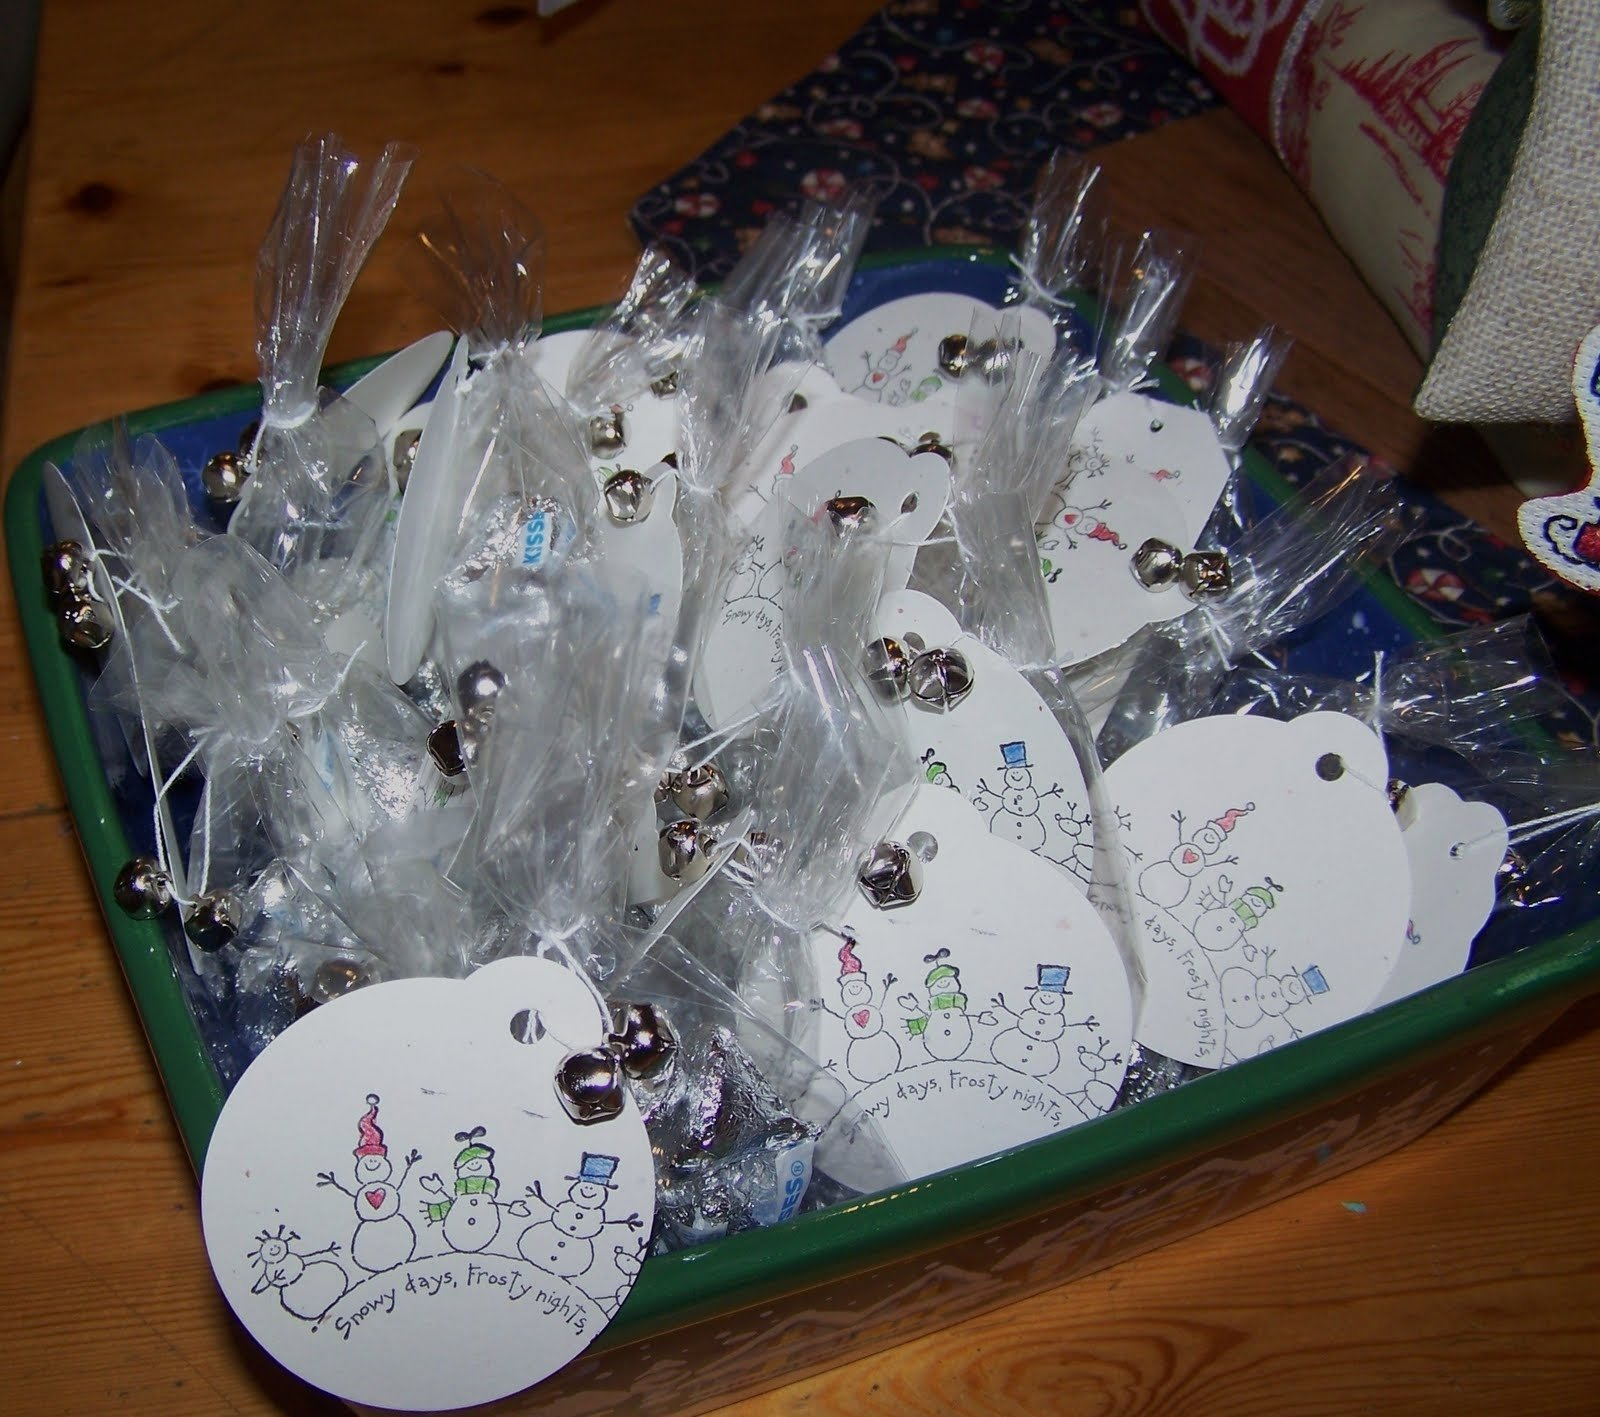 10 Nice Small Gift Ideas For Coworkers cross stitch inspirationcindy derosa christmas goodie bags 2020